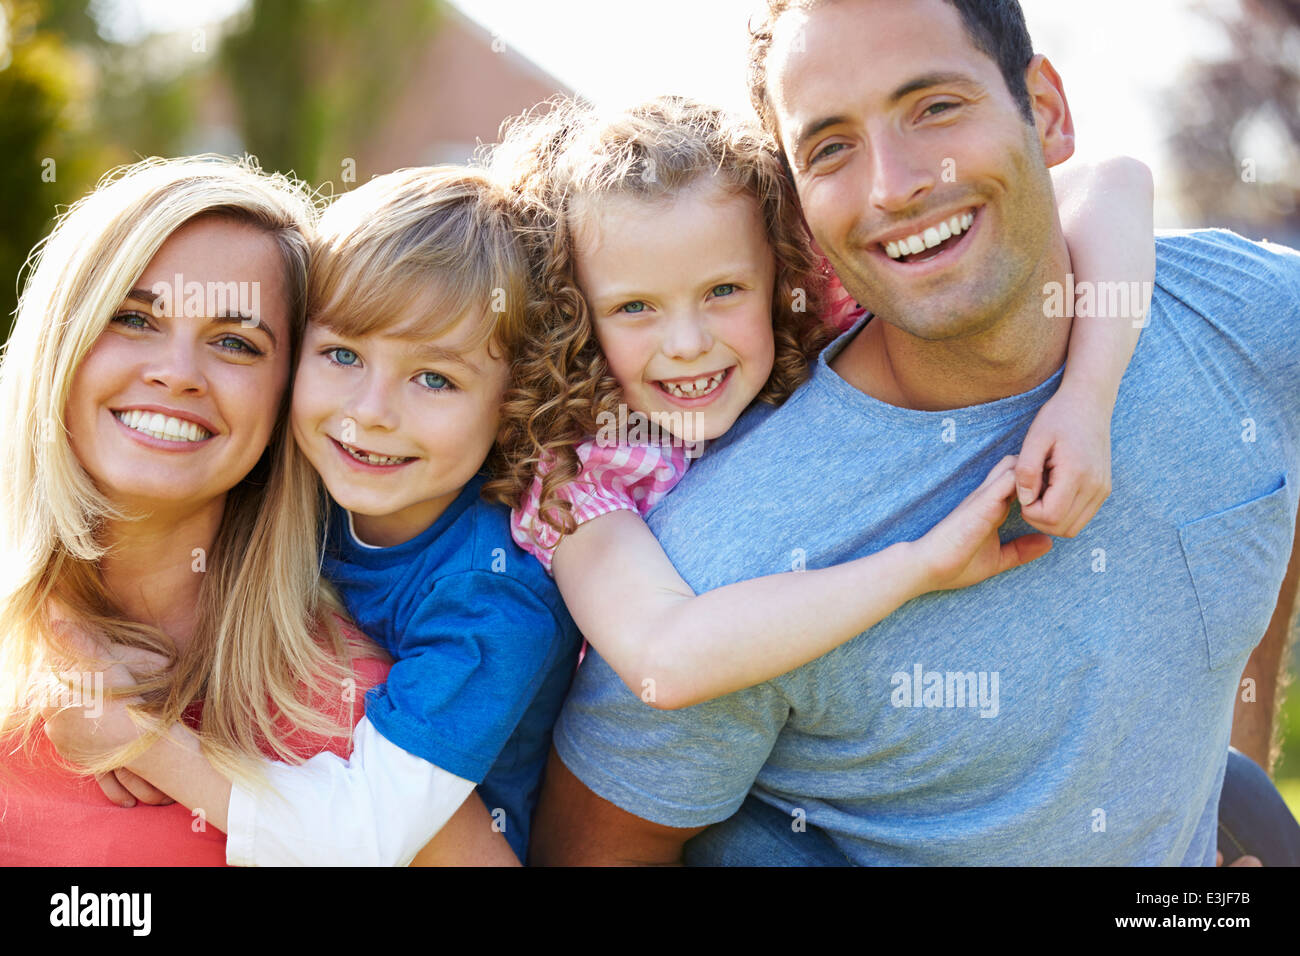 Parents Giving Children Piggyback Rides In Garden - Stock Image